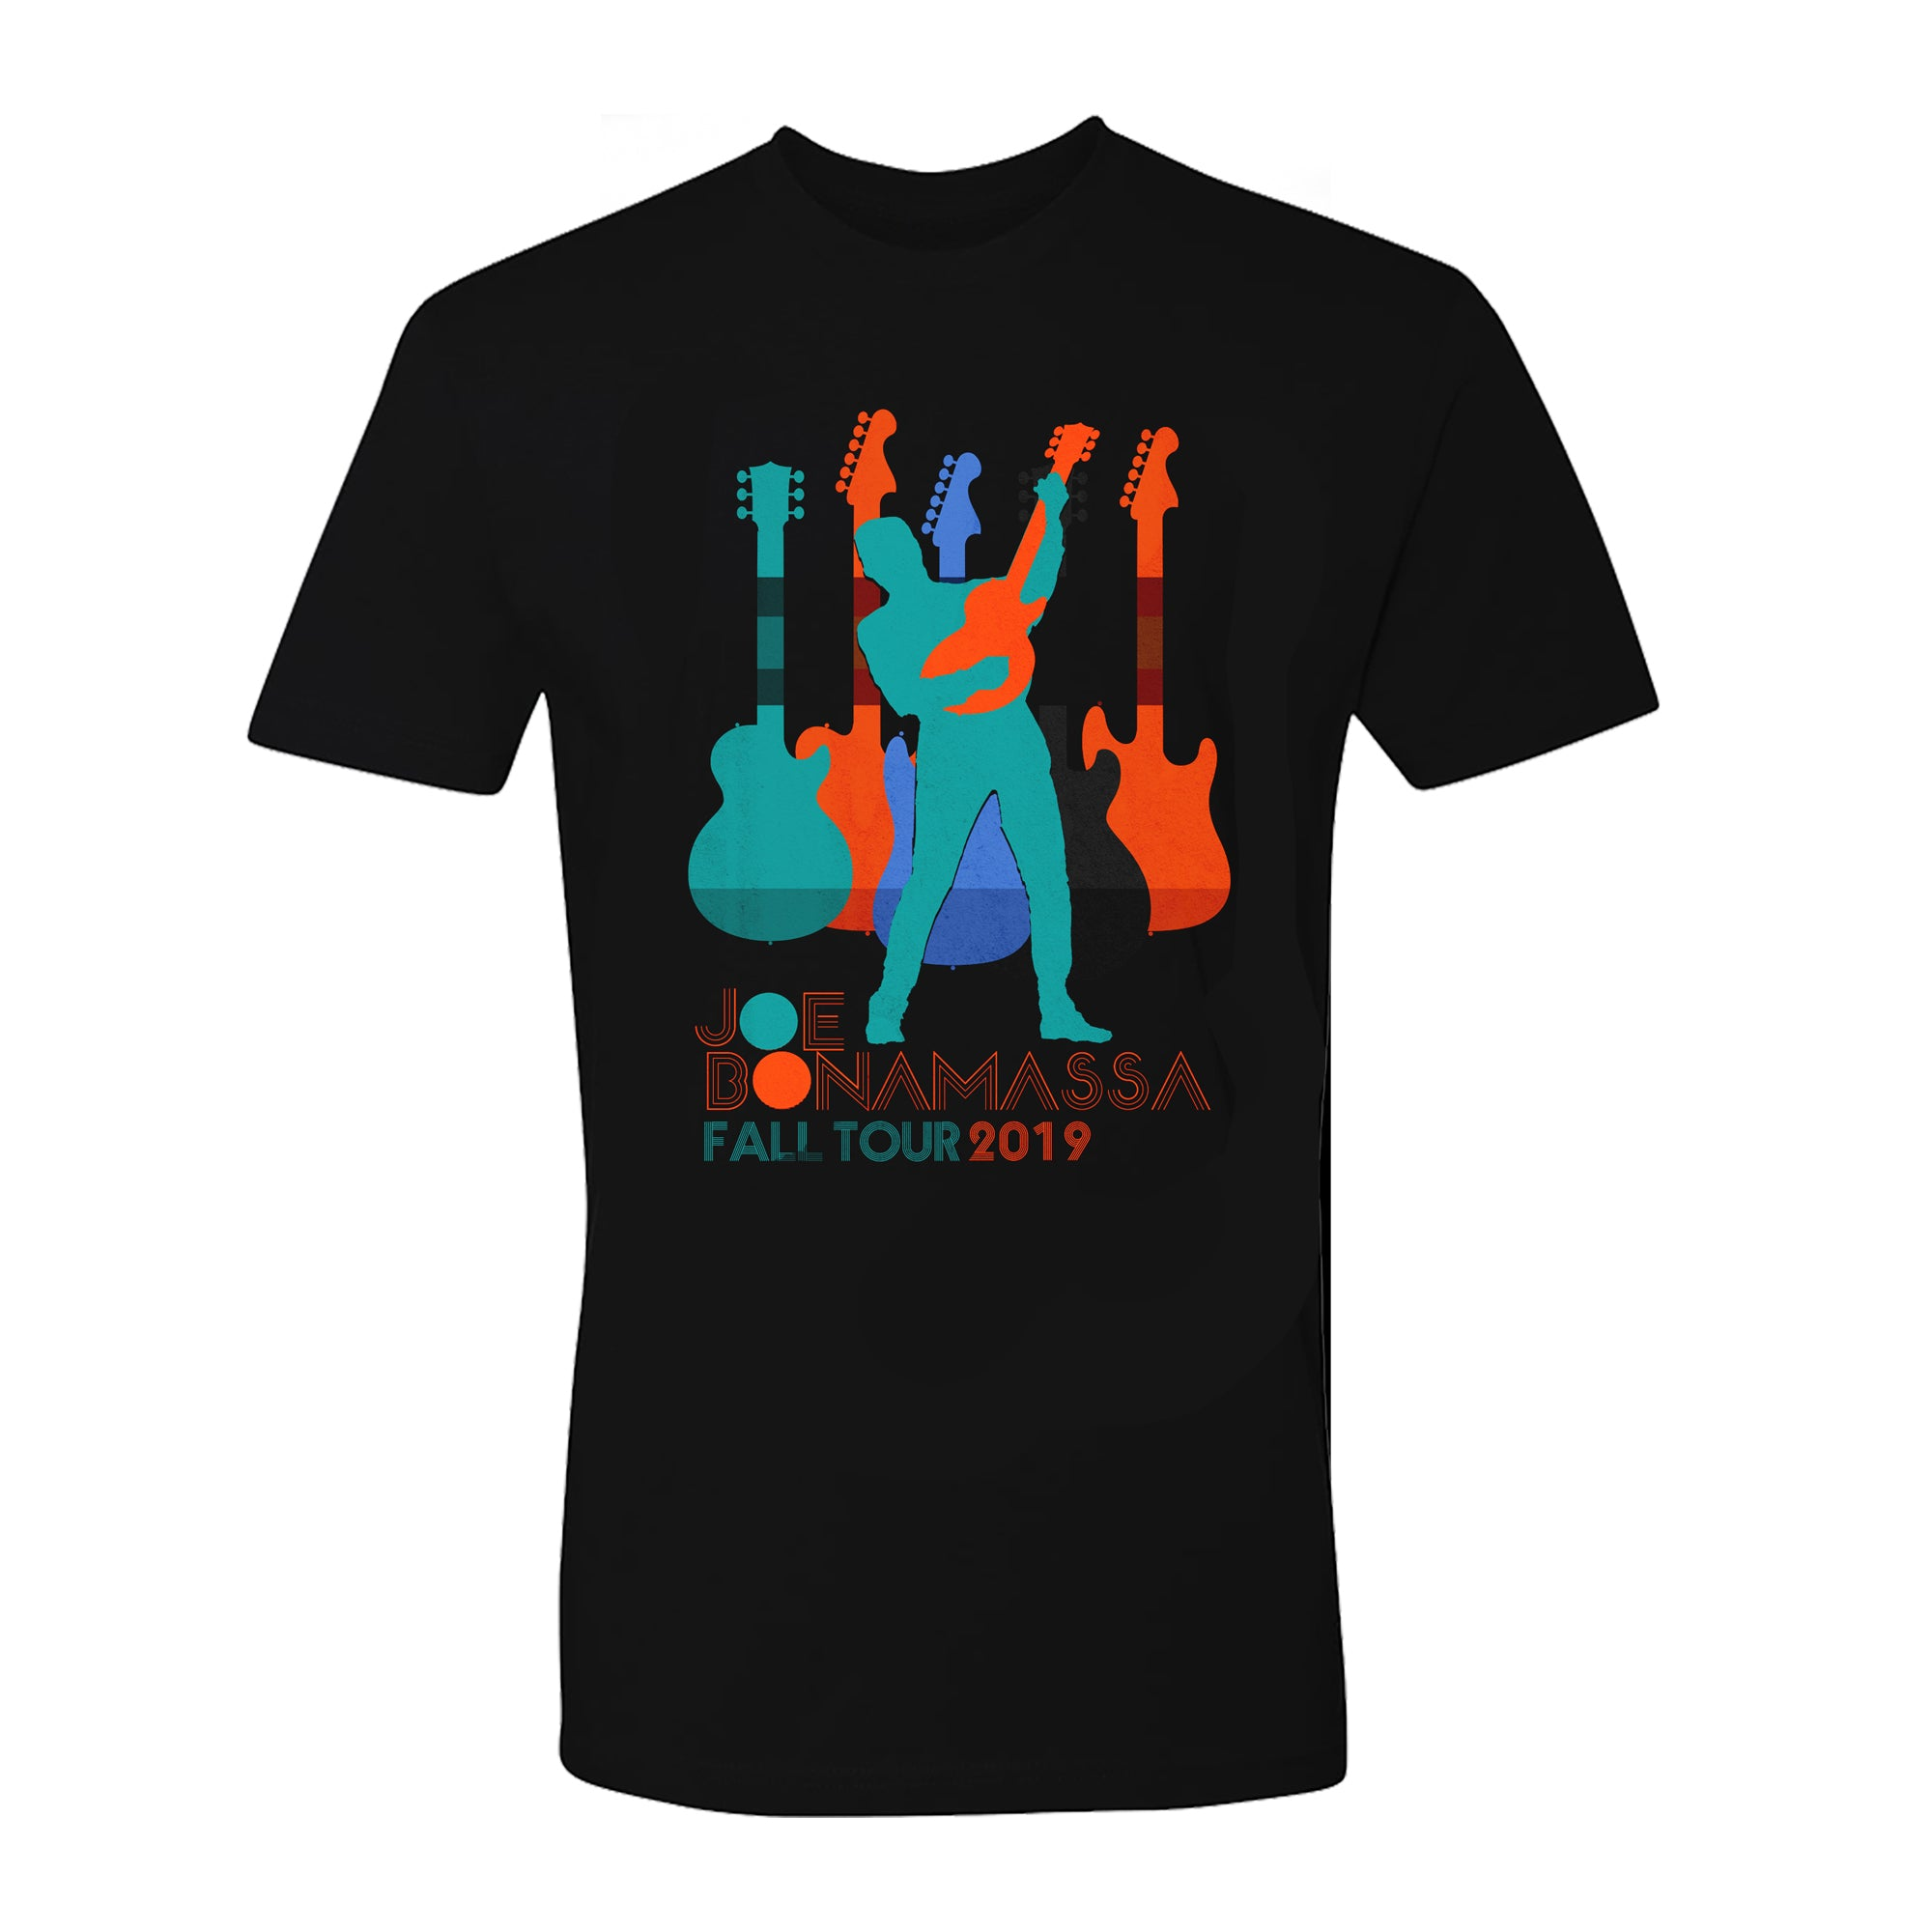 2019 Fall Tour T-Shirt (Unisex) - Silhouettes